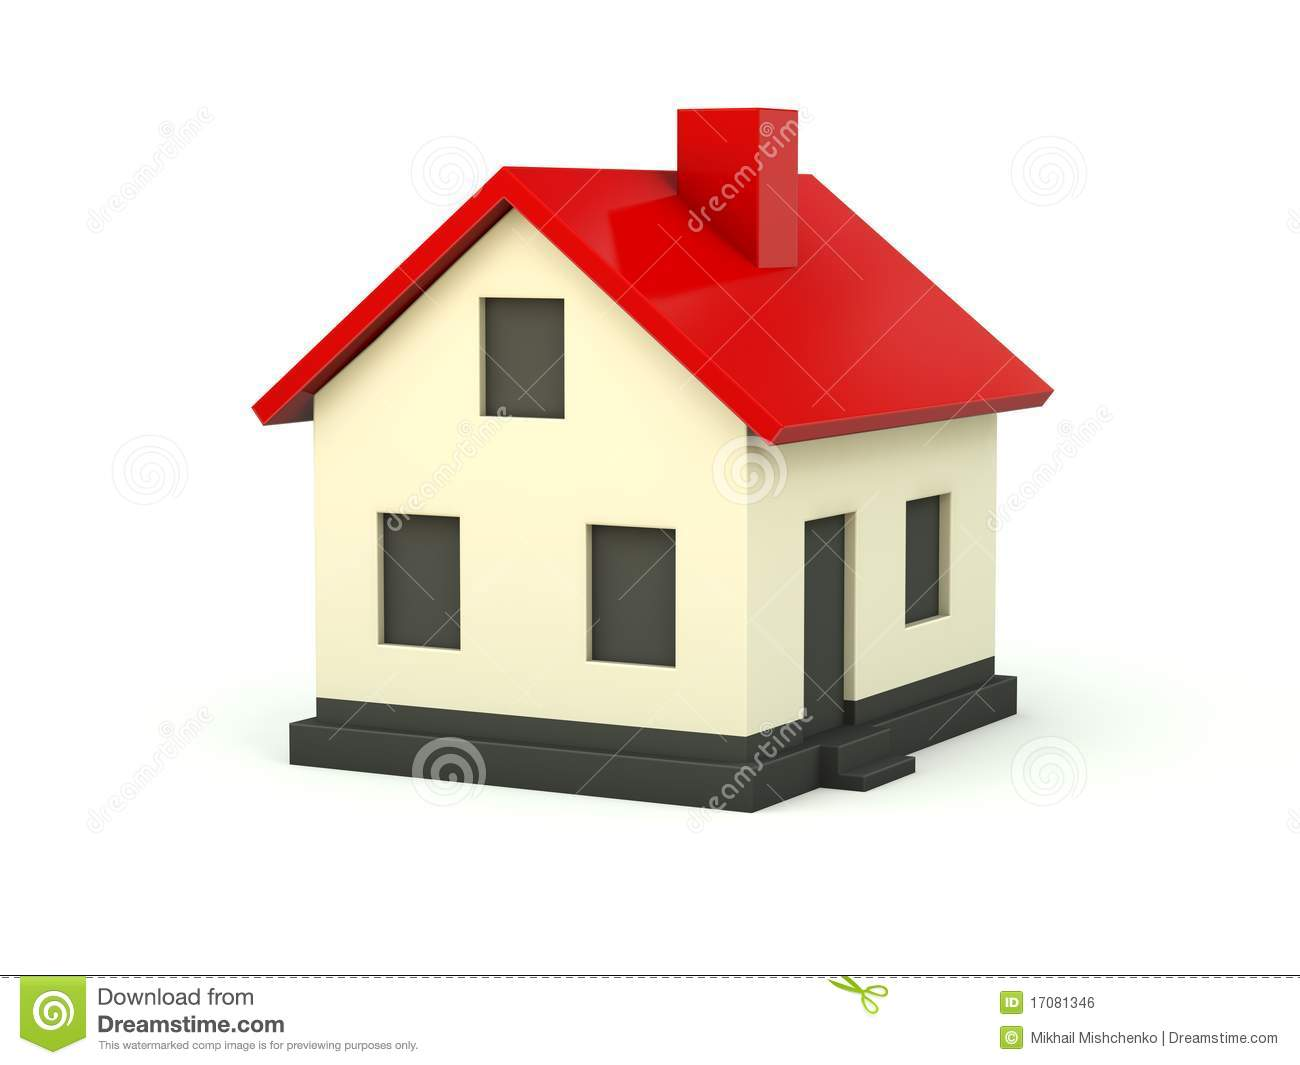 Lizenzfreies Stockbild Haus Mit Rotem Dach Image17081346 on Houses With Red Roofs